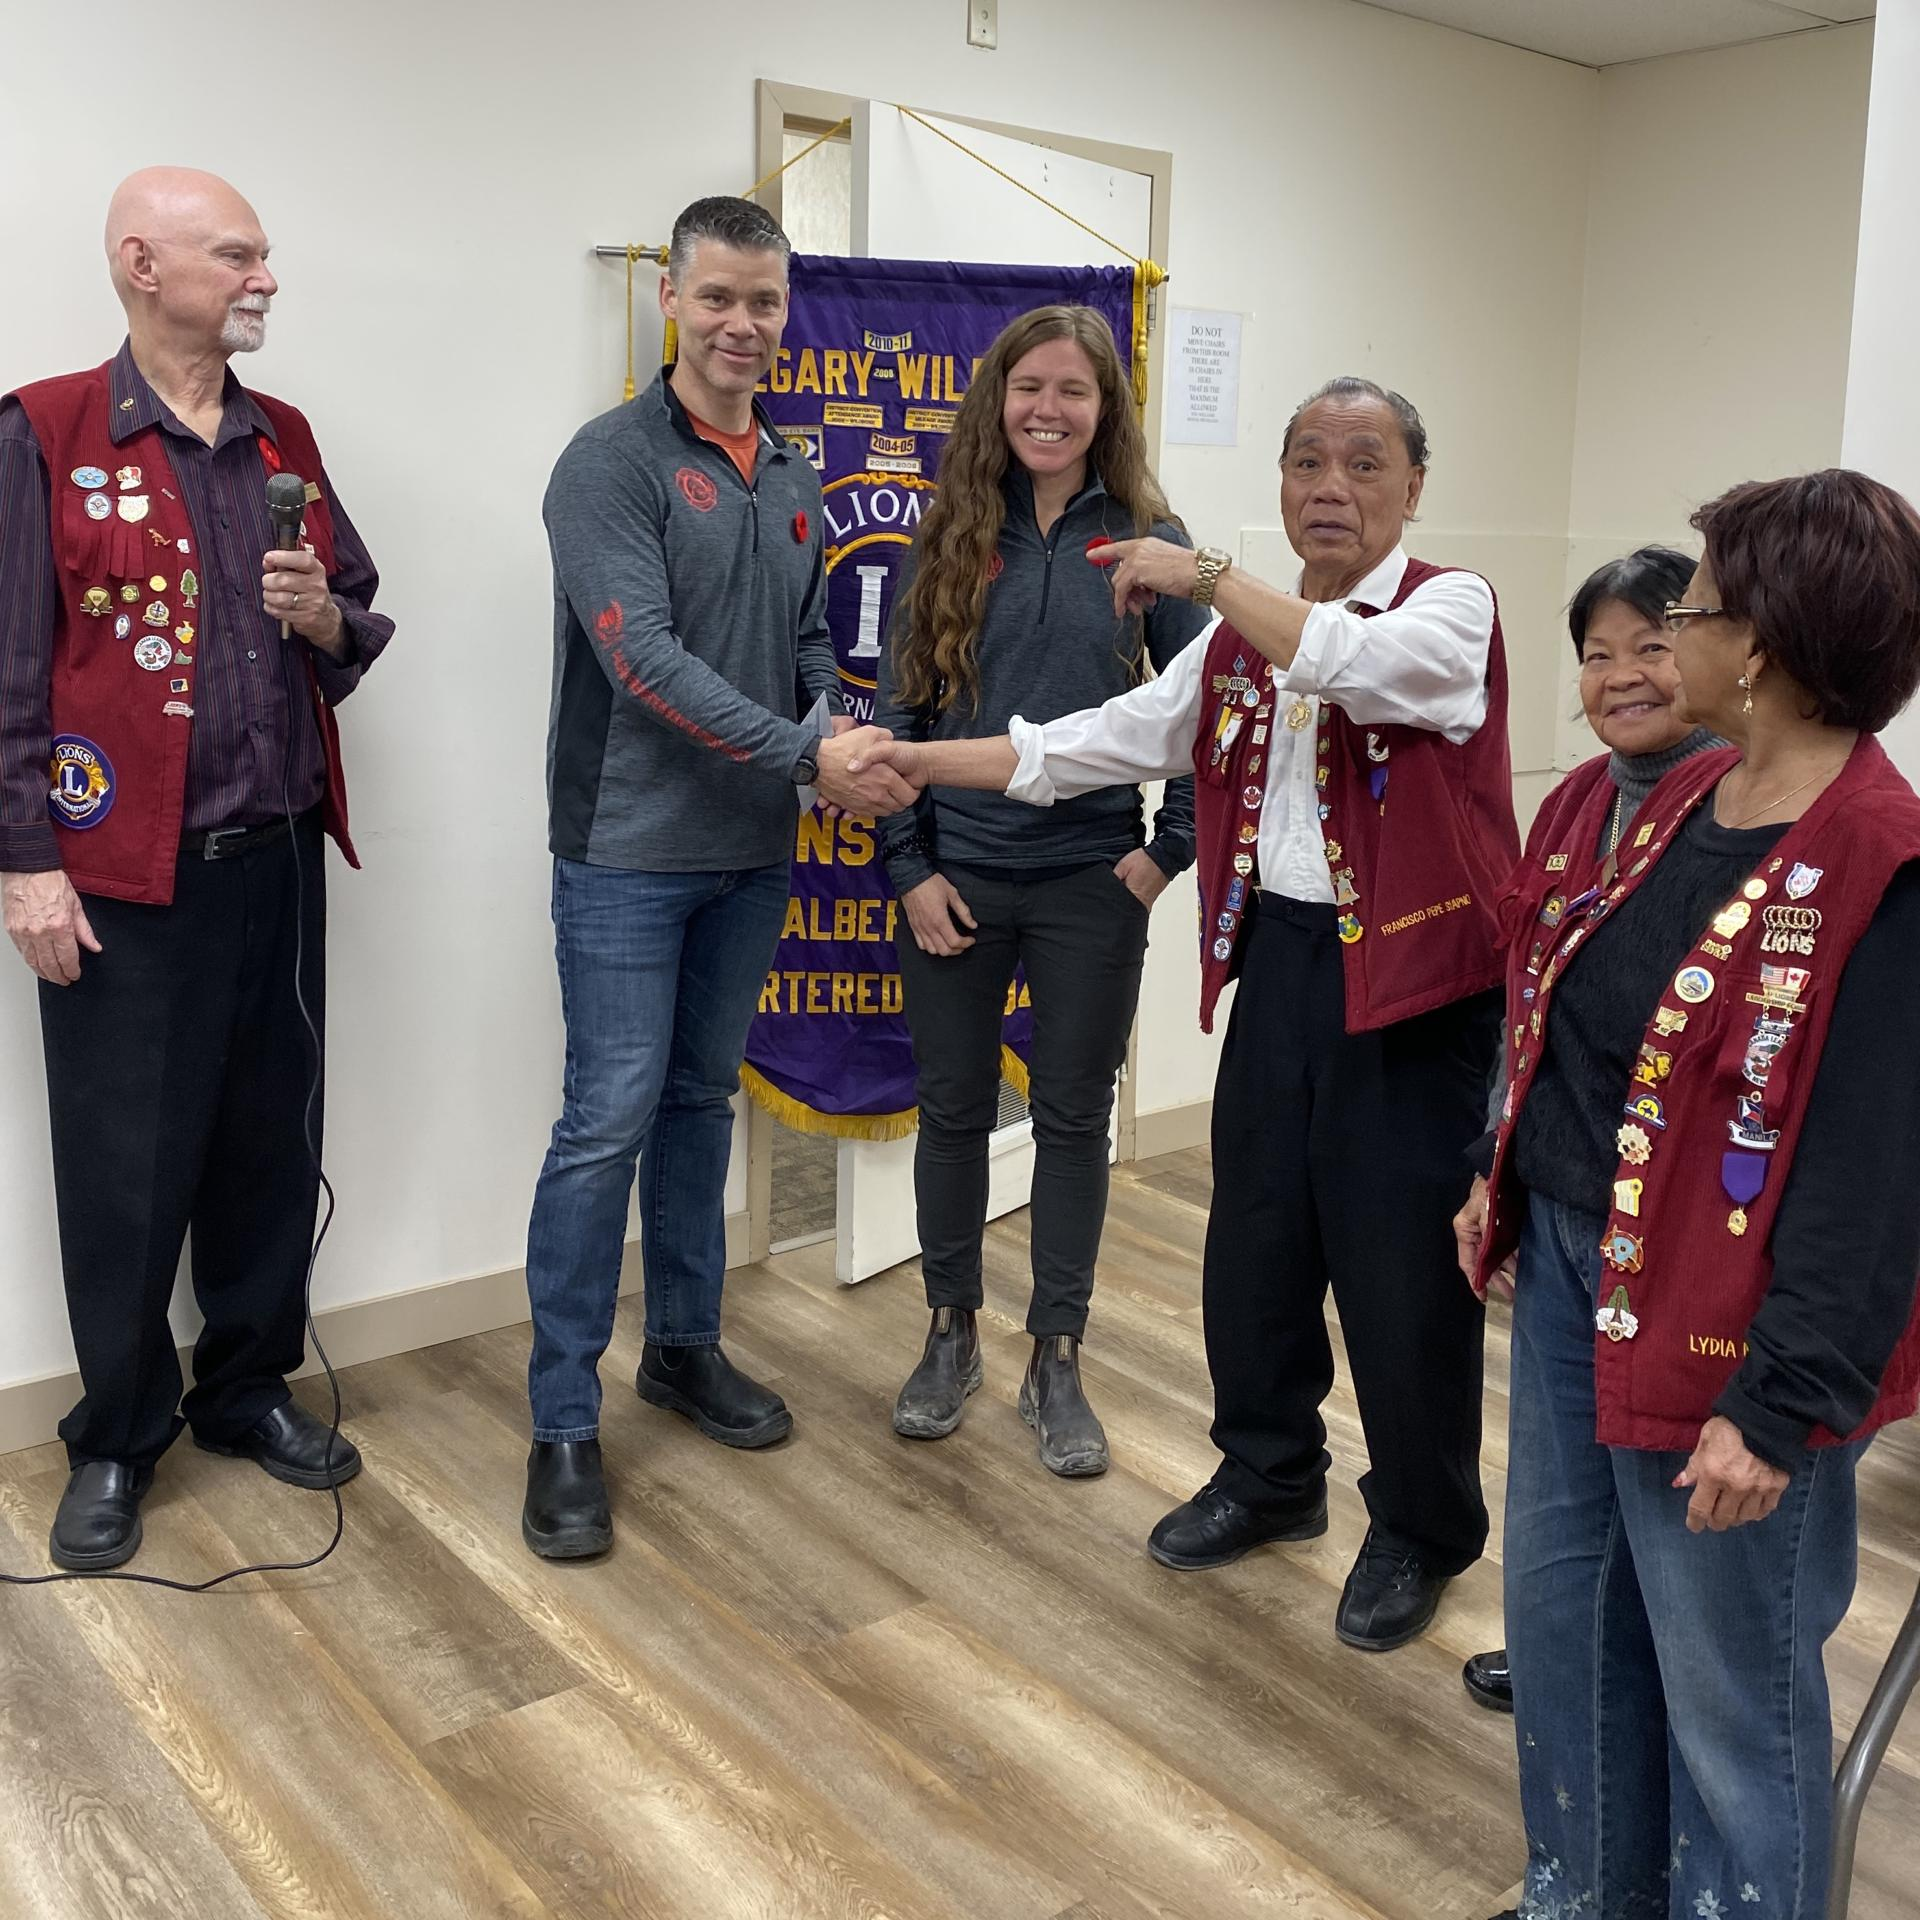 Thank you Wild Rose Lions Club!